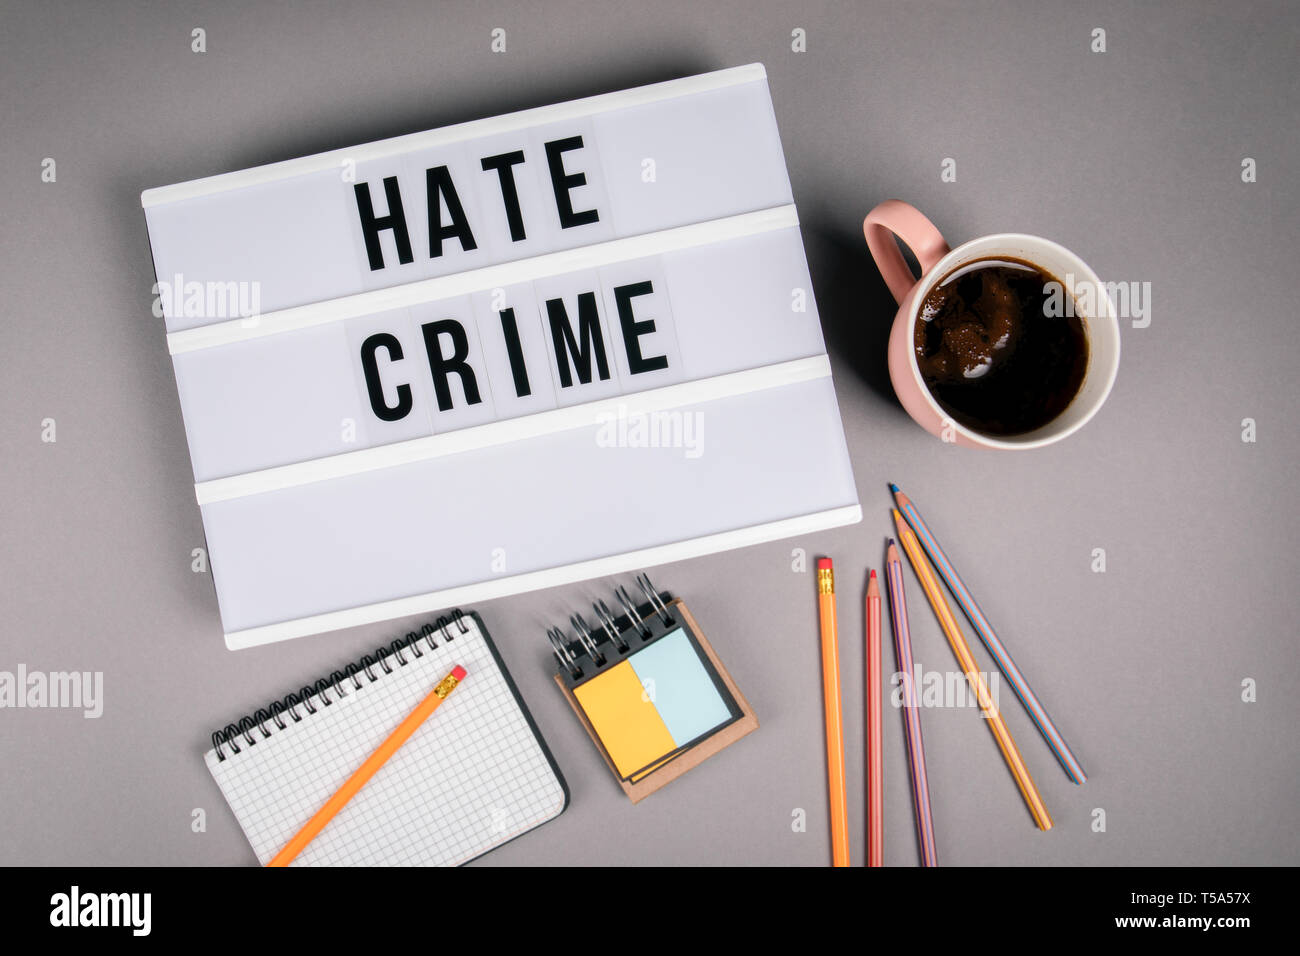 Hate Crime. Text in light box - Stock Image